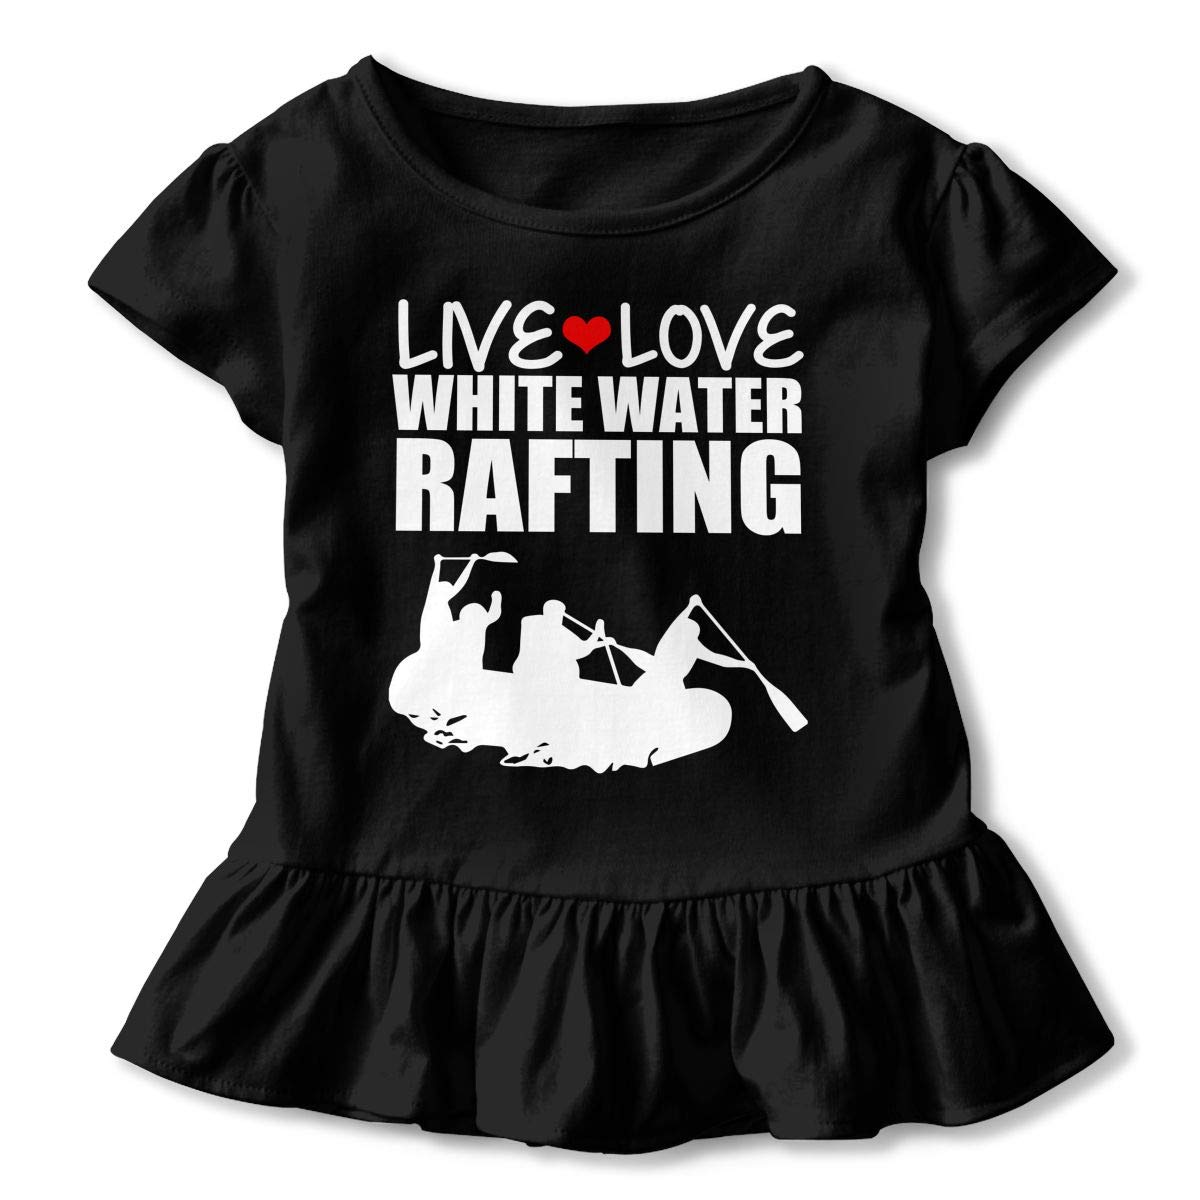 Live Love White Water Rafting Toddler Girls T Shirt Kids Cotton Short Sleeve Ruffle Tee